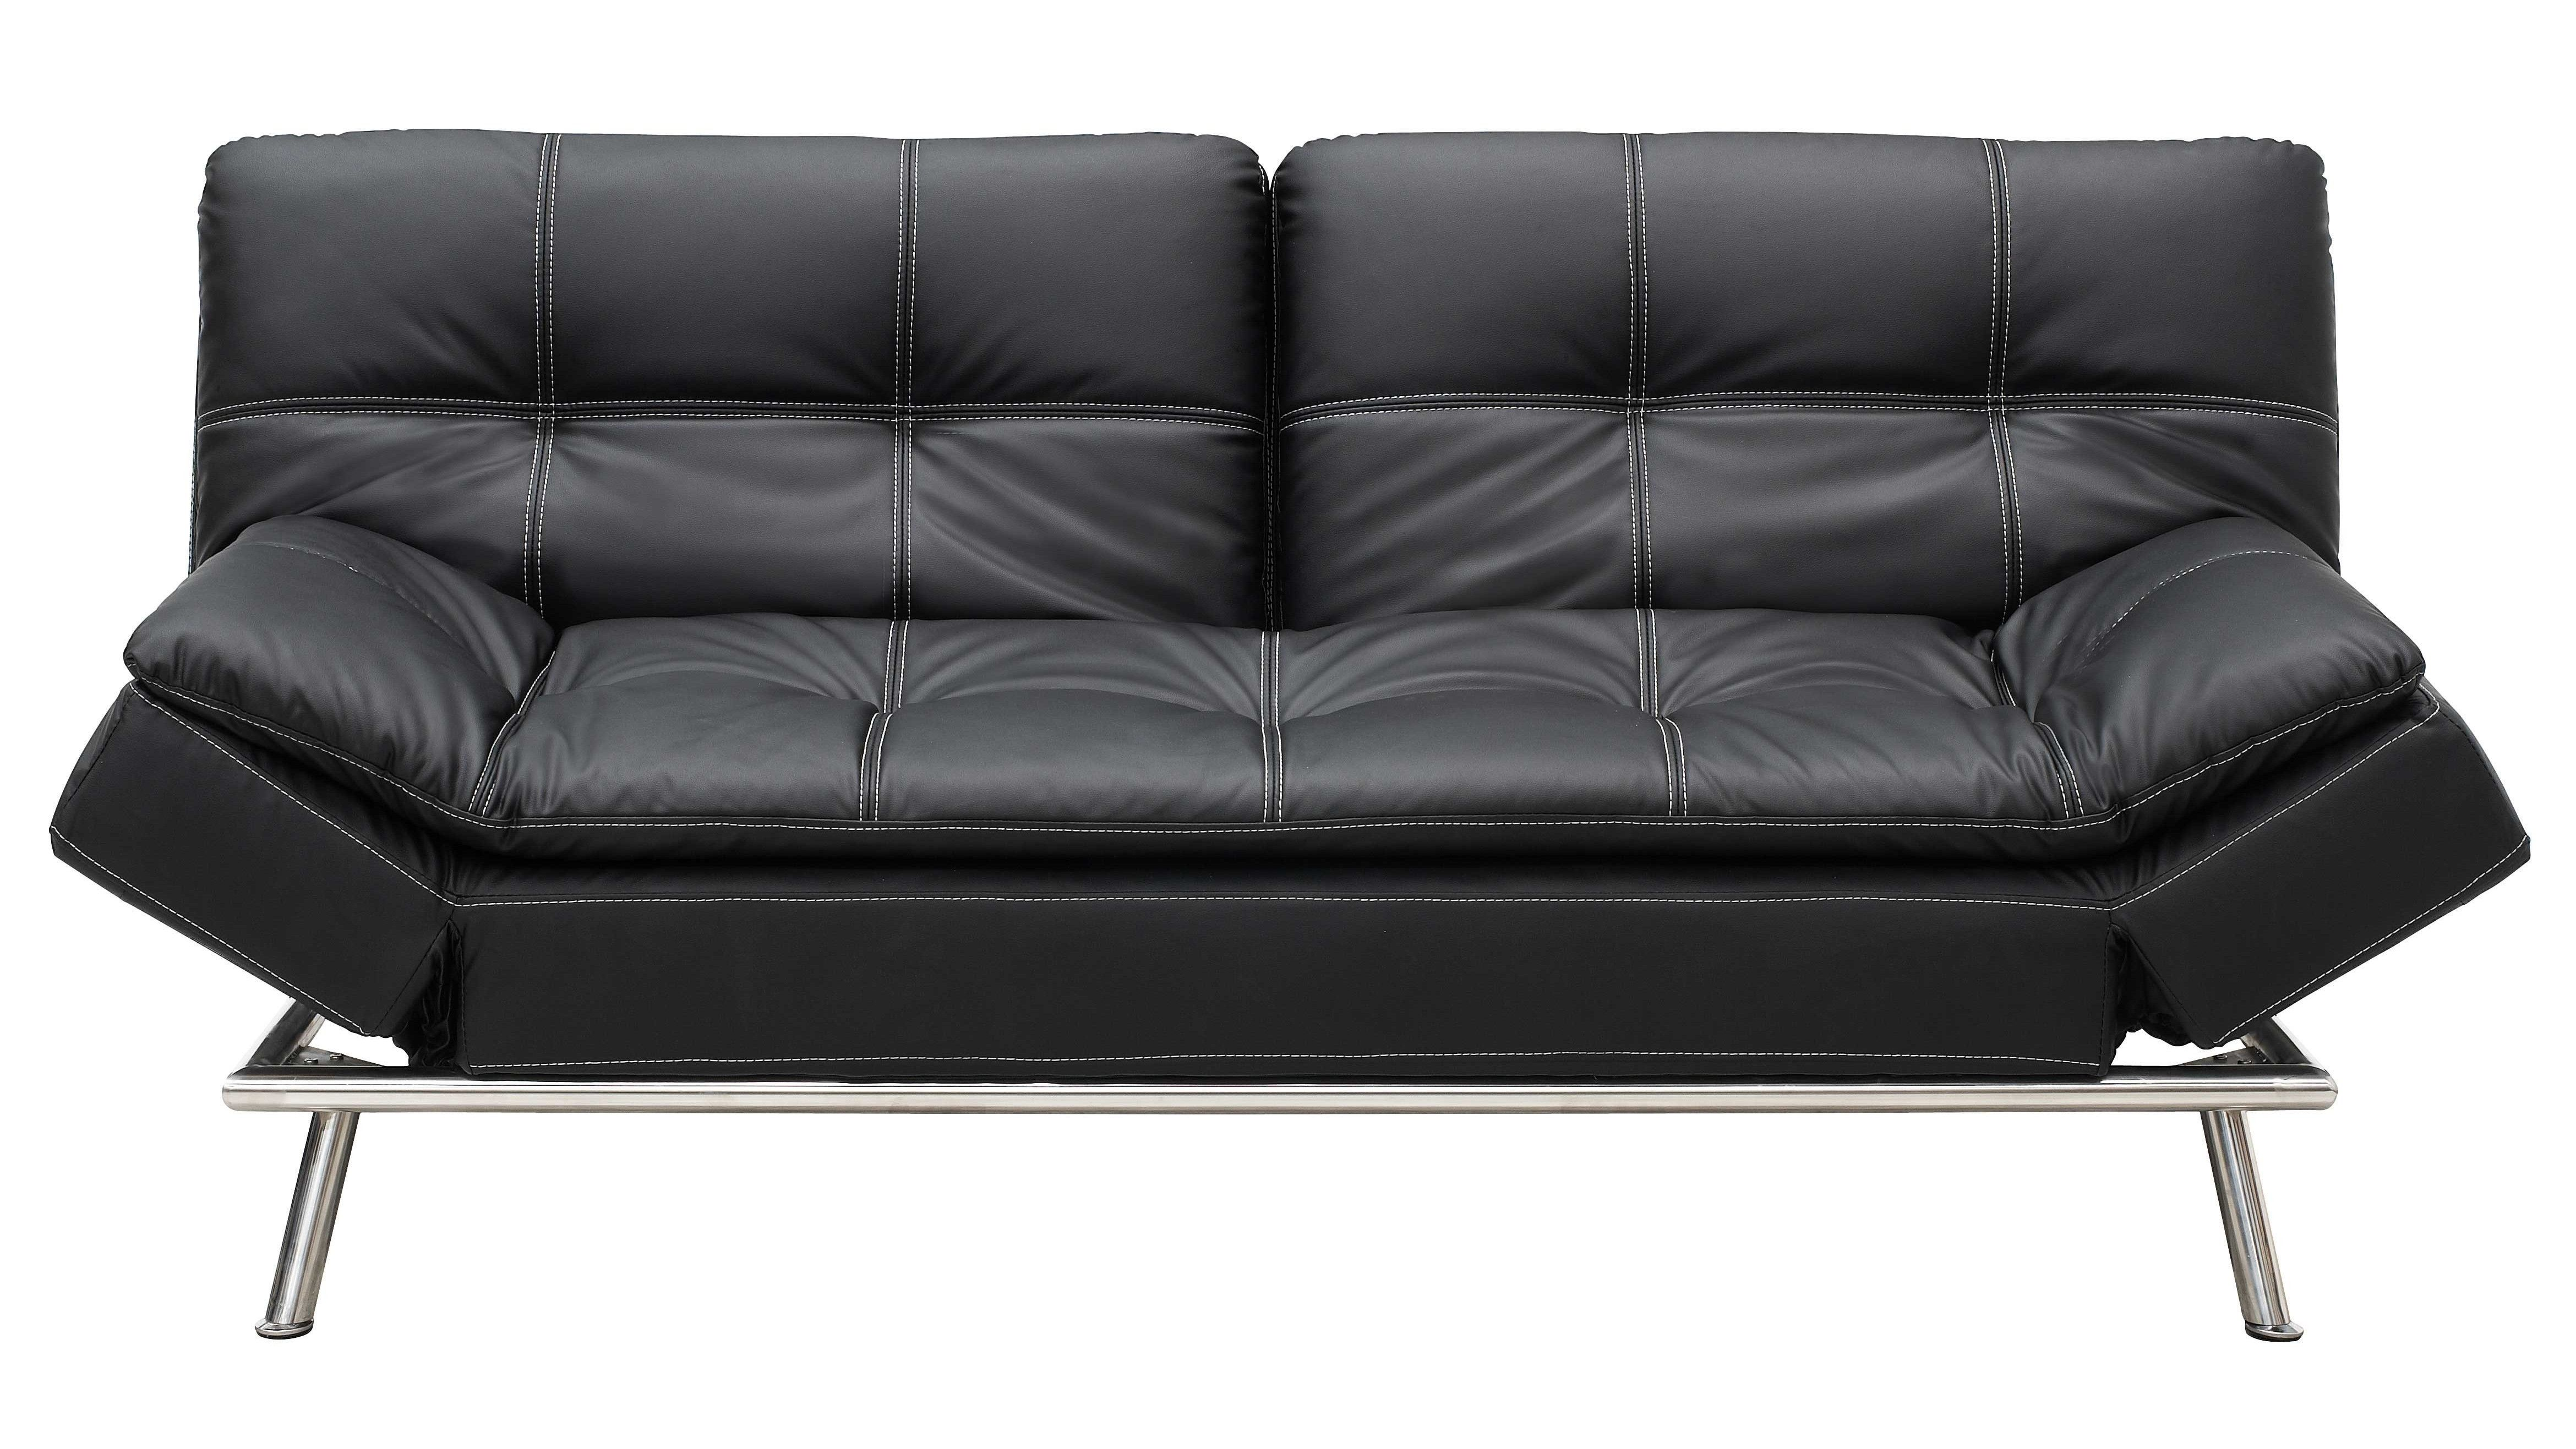 Sofa Beds Mainstays Sleeper Items 1 24 Of 210 Jcpenney Outfit Your Home With Comfy And Affordable Couches Futon